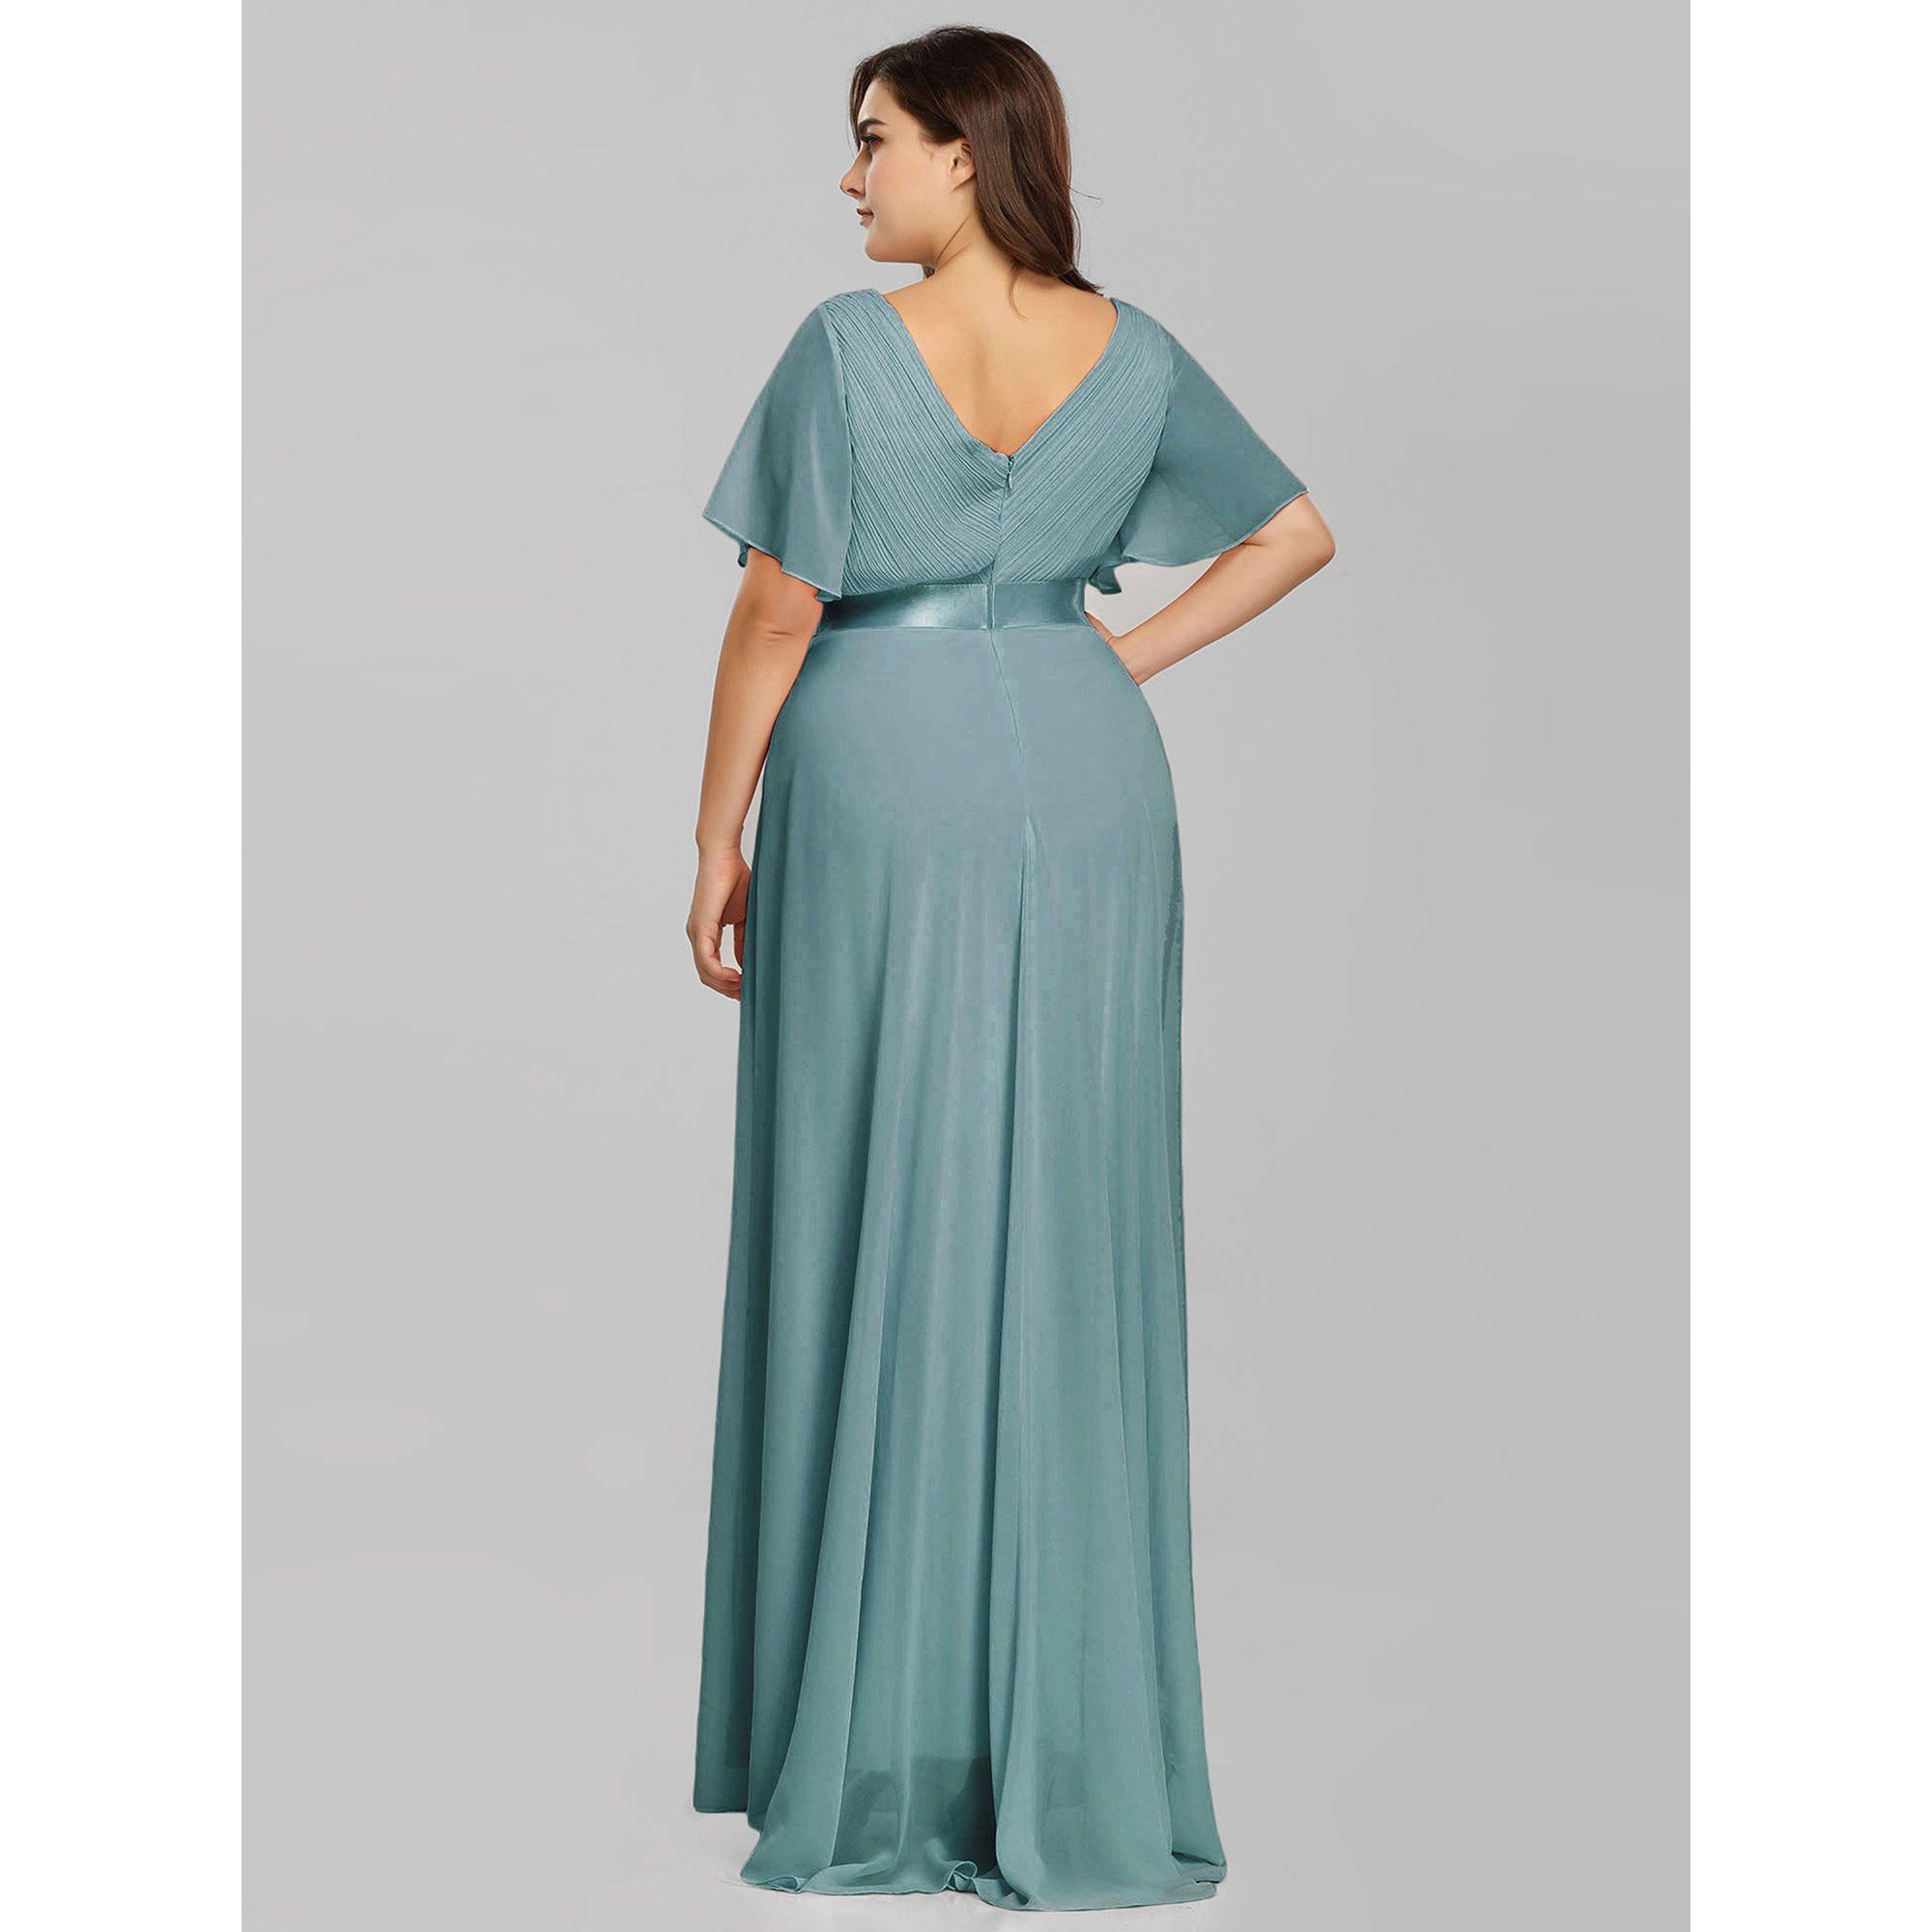 Ever Pretty Ever Pretty Womens Flowy Mother Of The Bride Dresses For Women 98902 Dusty Blue Us16 Walmart Com In 2021 Bridesmaid Dresses Plus Size Long Bridesmaid Gowns Long Bridesmaid Dresses [ 2000 x 2000 Pixel ]